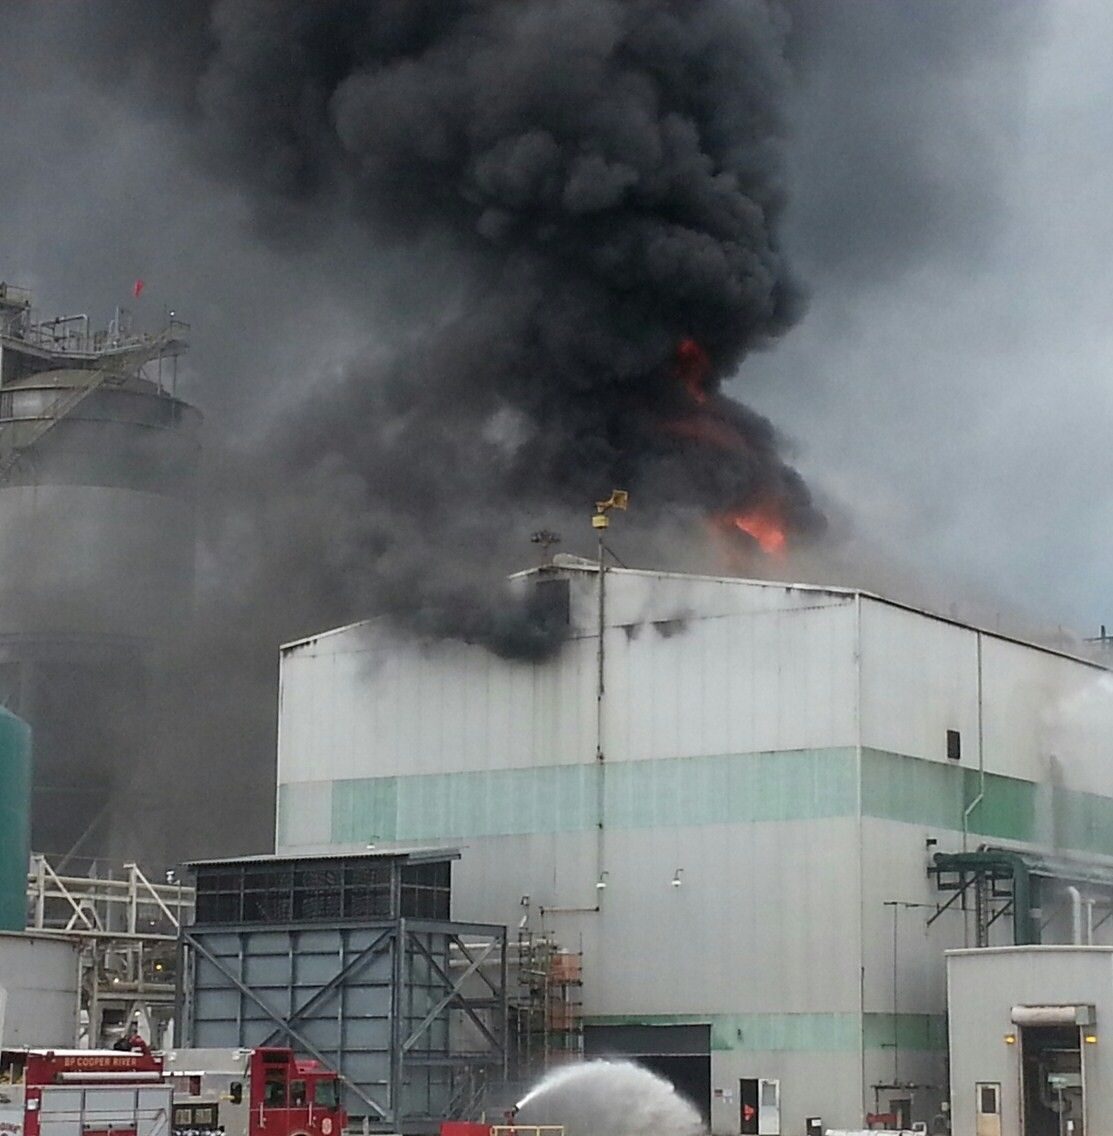 BP Amoco shuts down one chemical unit after $25 million fire